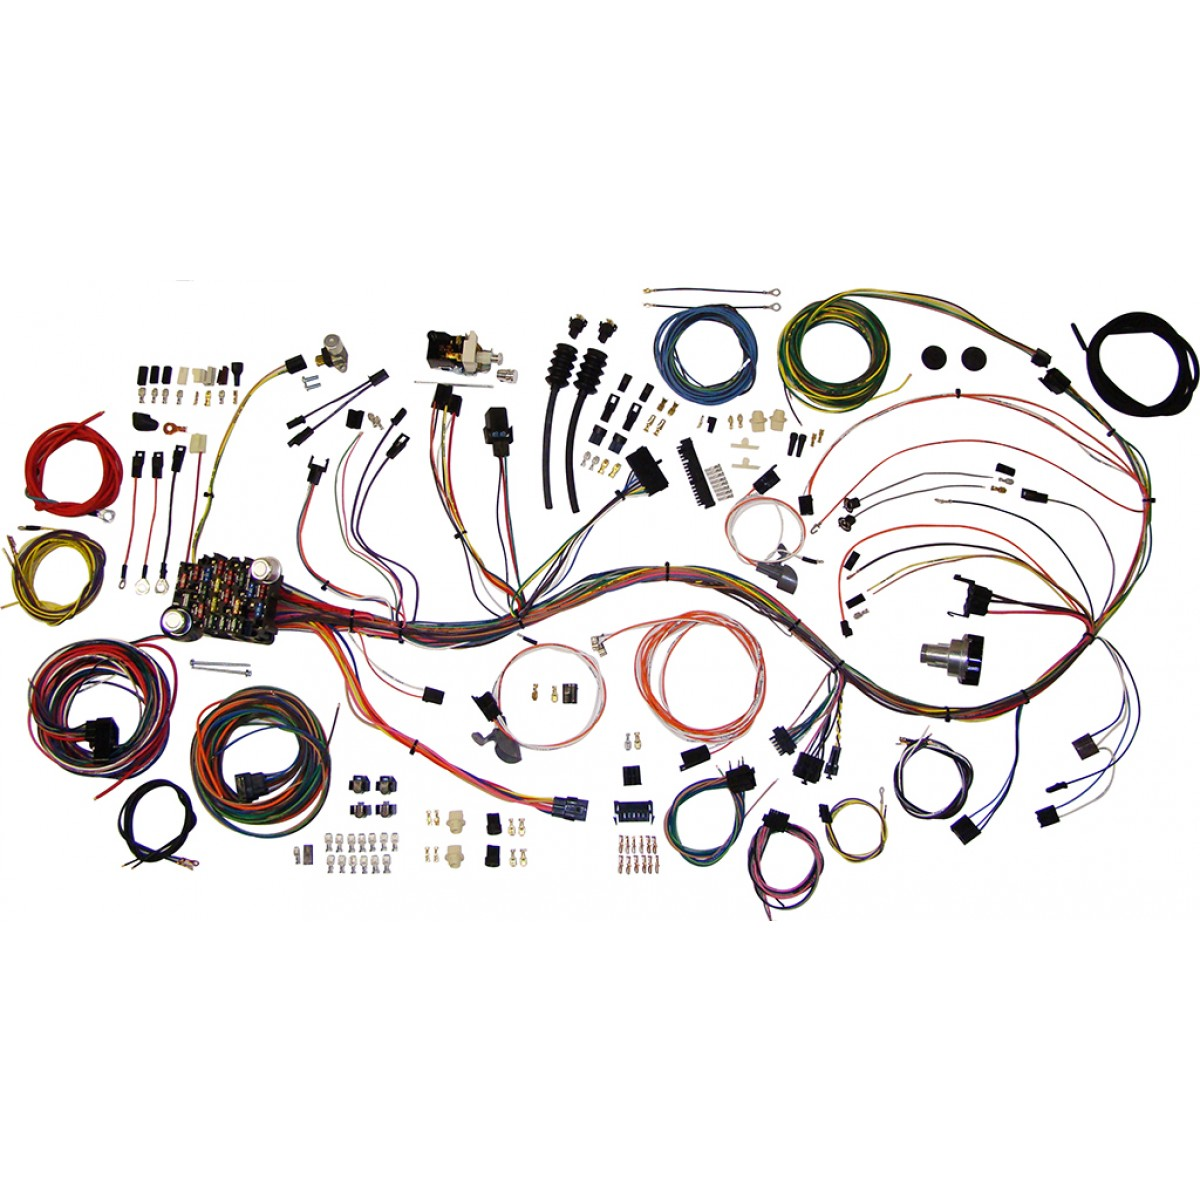 complete wiring harness kit 1969 1972 chevy truck part 510089 c10 c20 wire harness chevy c10 wiring harness electrical, dash wires, chevy truck 1965 chevy c10 wiring harness at eliteediting.co